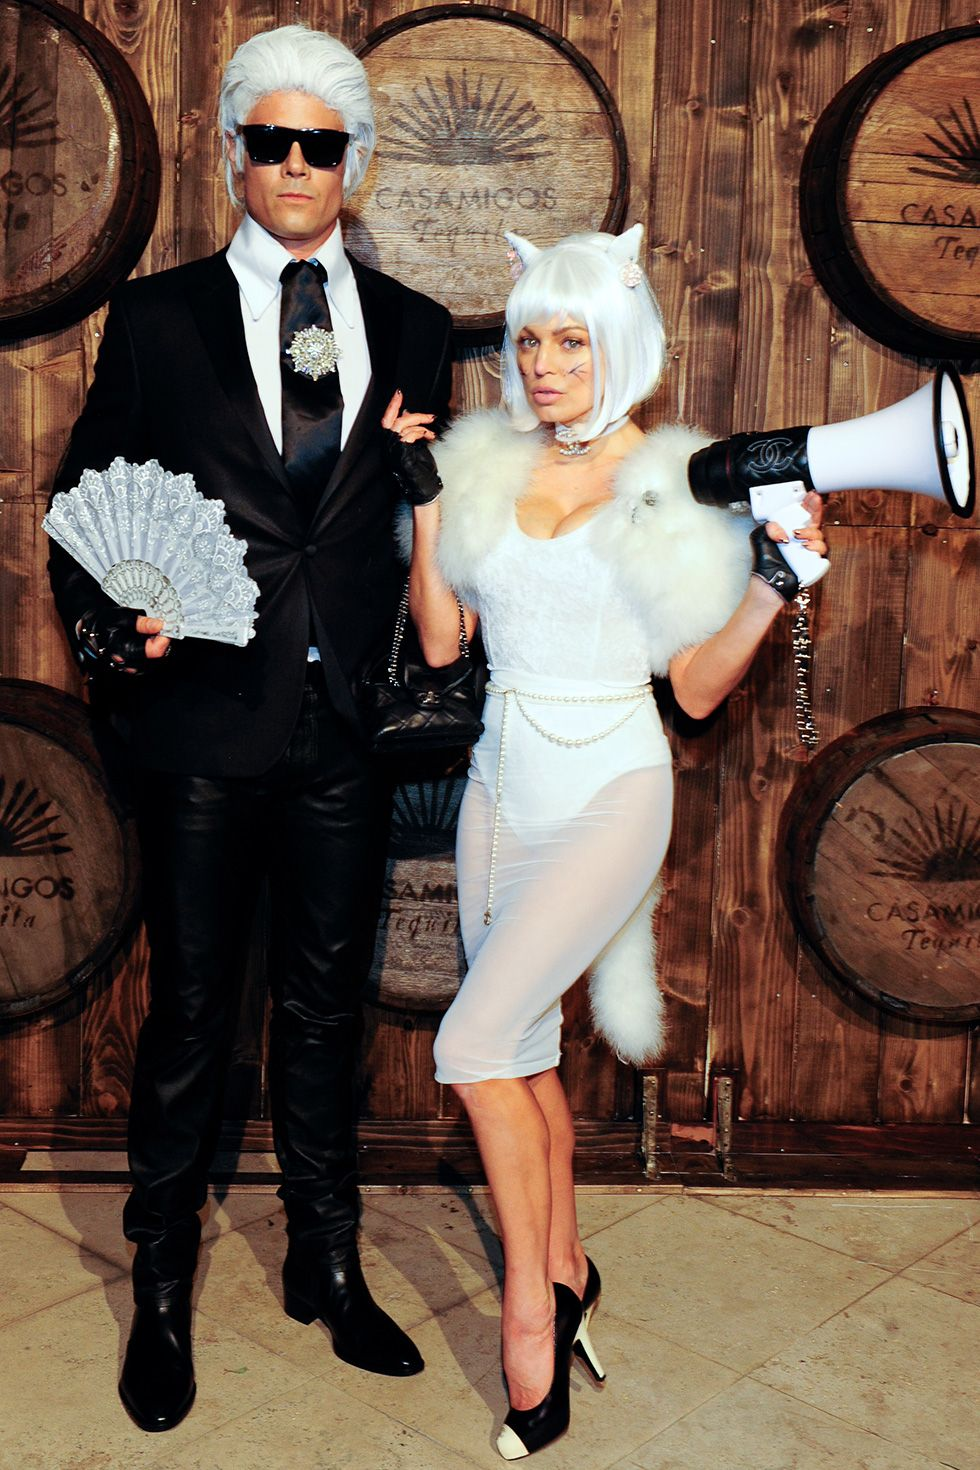 Josh Duhamel and Fergie - Karl Lagerfeld And His Cat Josh Duhamel and Fergie dressed up as Karl Lagerfeld and his cat, Choupette, to attend the 2015 Casamigos Tequila Halloween party in Los Angeles, California.